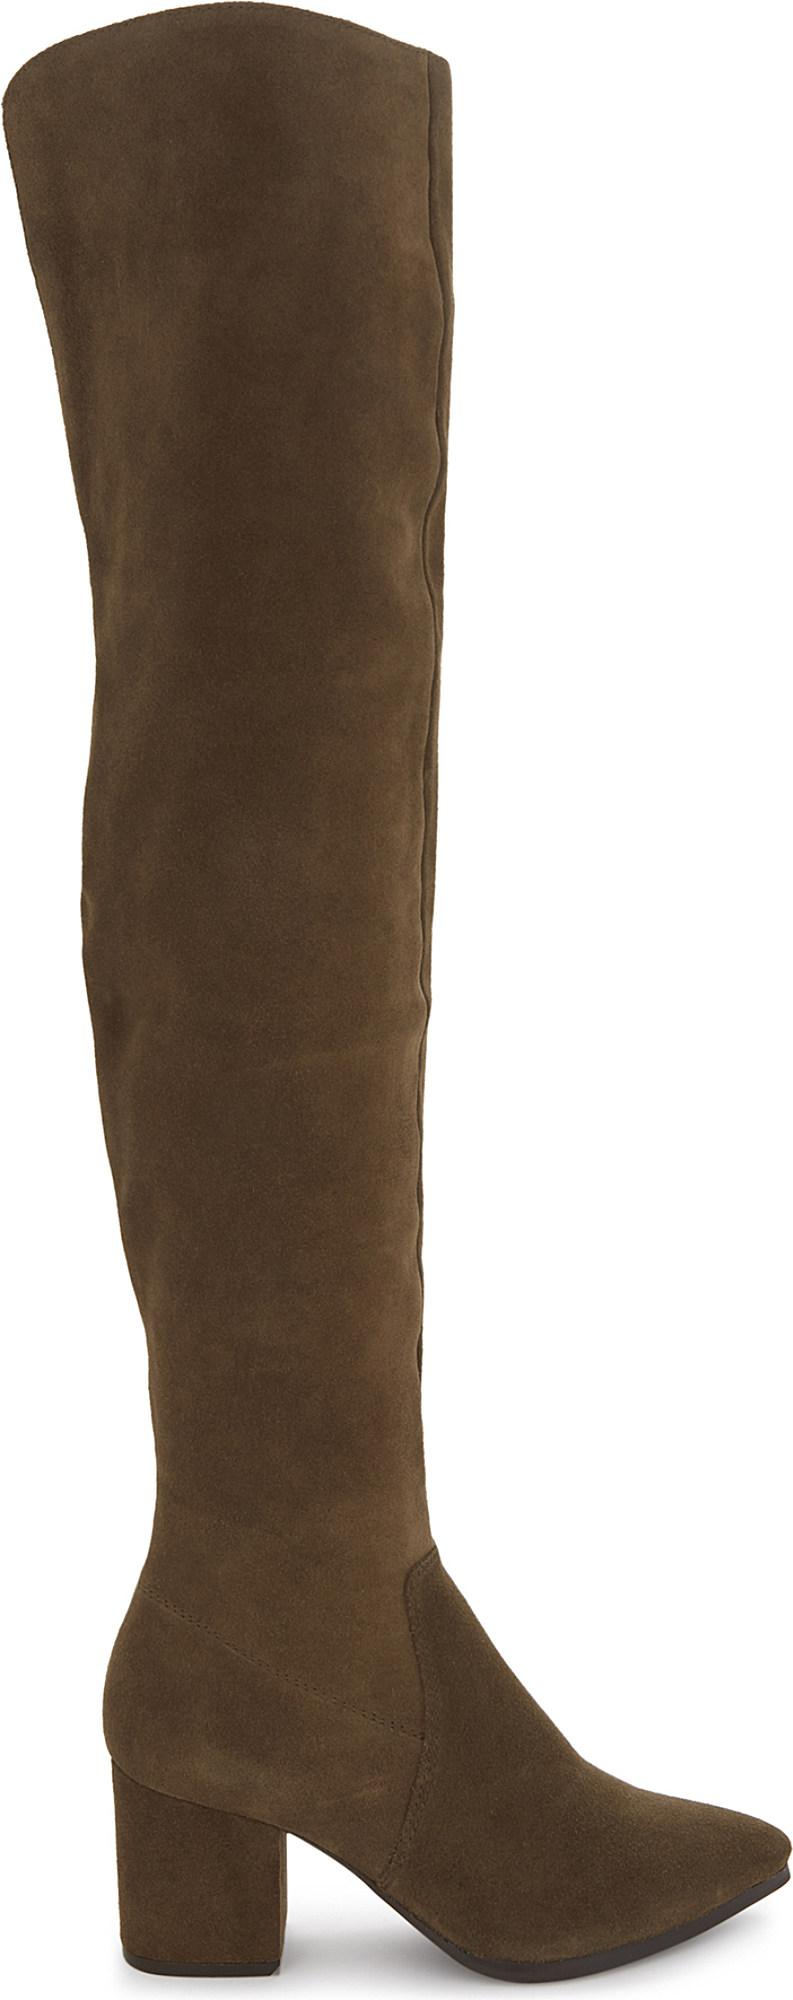 bce8b21cd2d Gallery. Previously sold at  Selfridges · Women s Metallic Boots ...